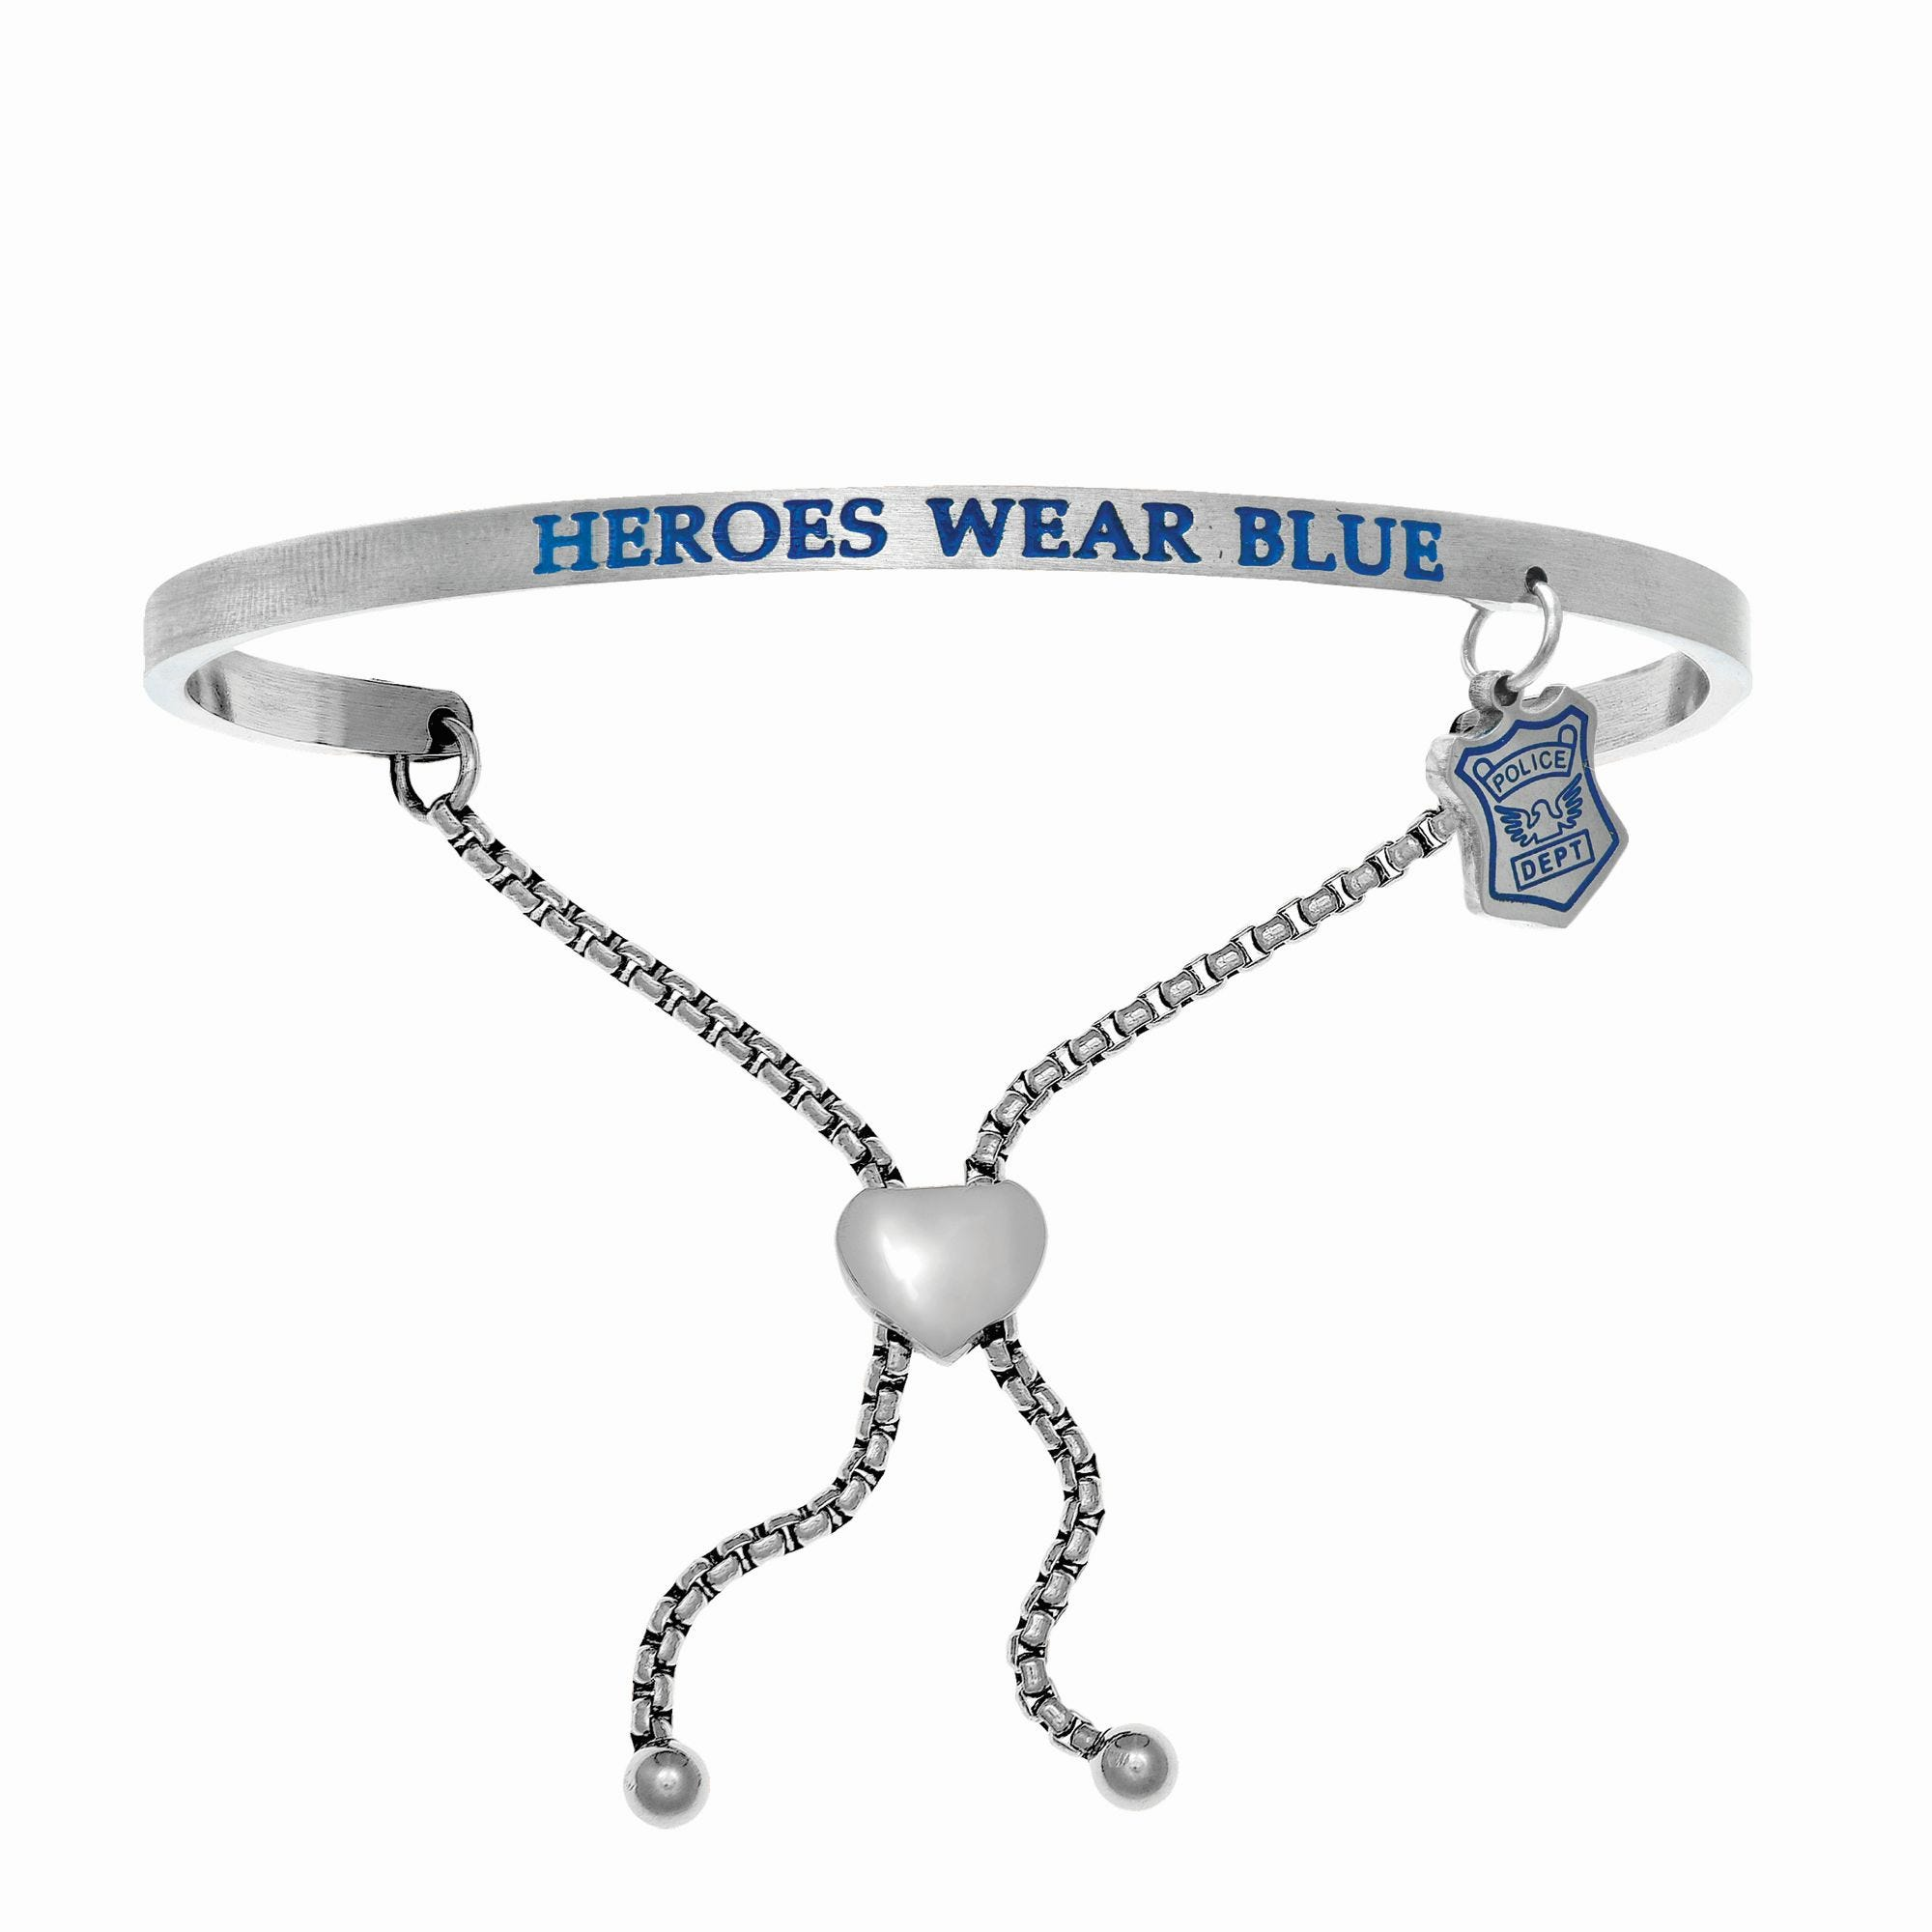 Heroes Wear Blue. Intuitions Bolo Bracelet in White Stainless Steel